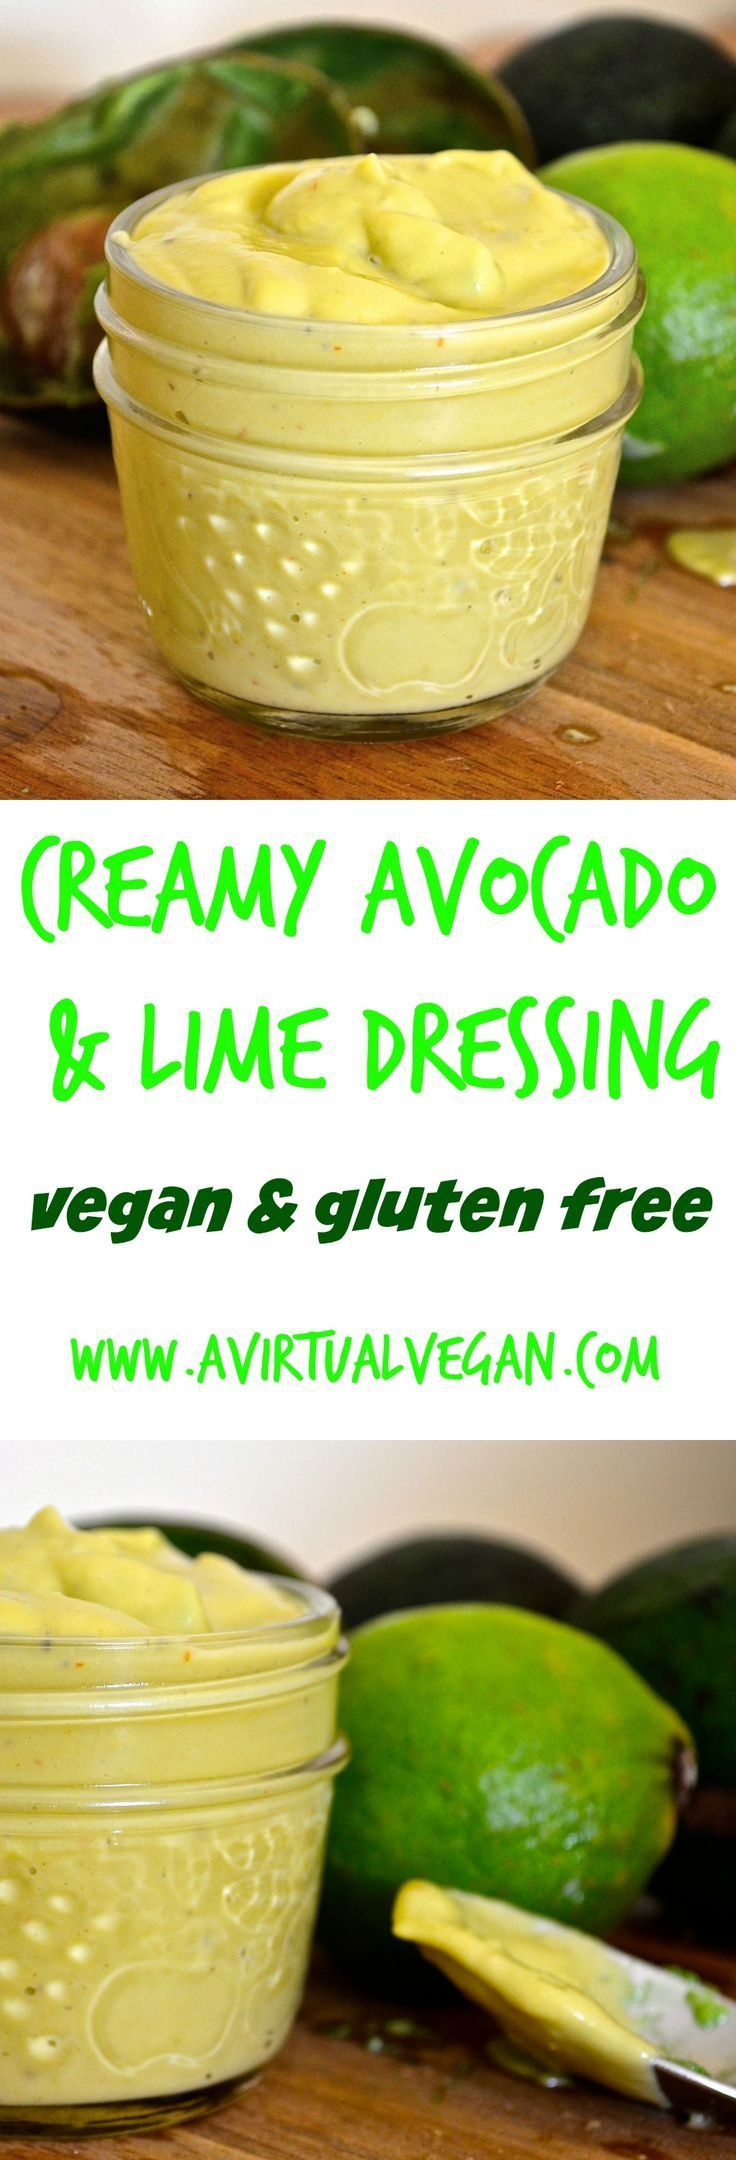 This Creamy Avocado & Lime Dressing is incredibly delicious and very versatile. It can be made as thick or thin as you like to suit whatever you are serving it with. Add some extra liquid to it and it becomes an amazing salad dressing or vinaigrette which